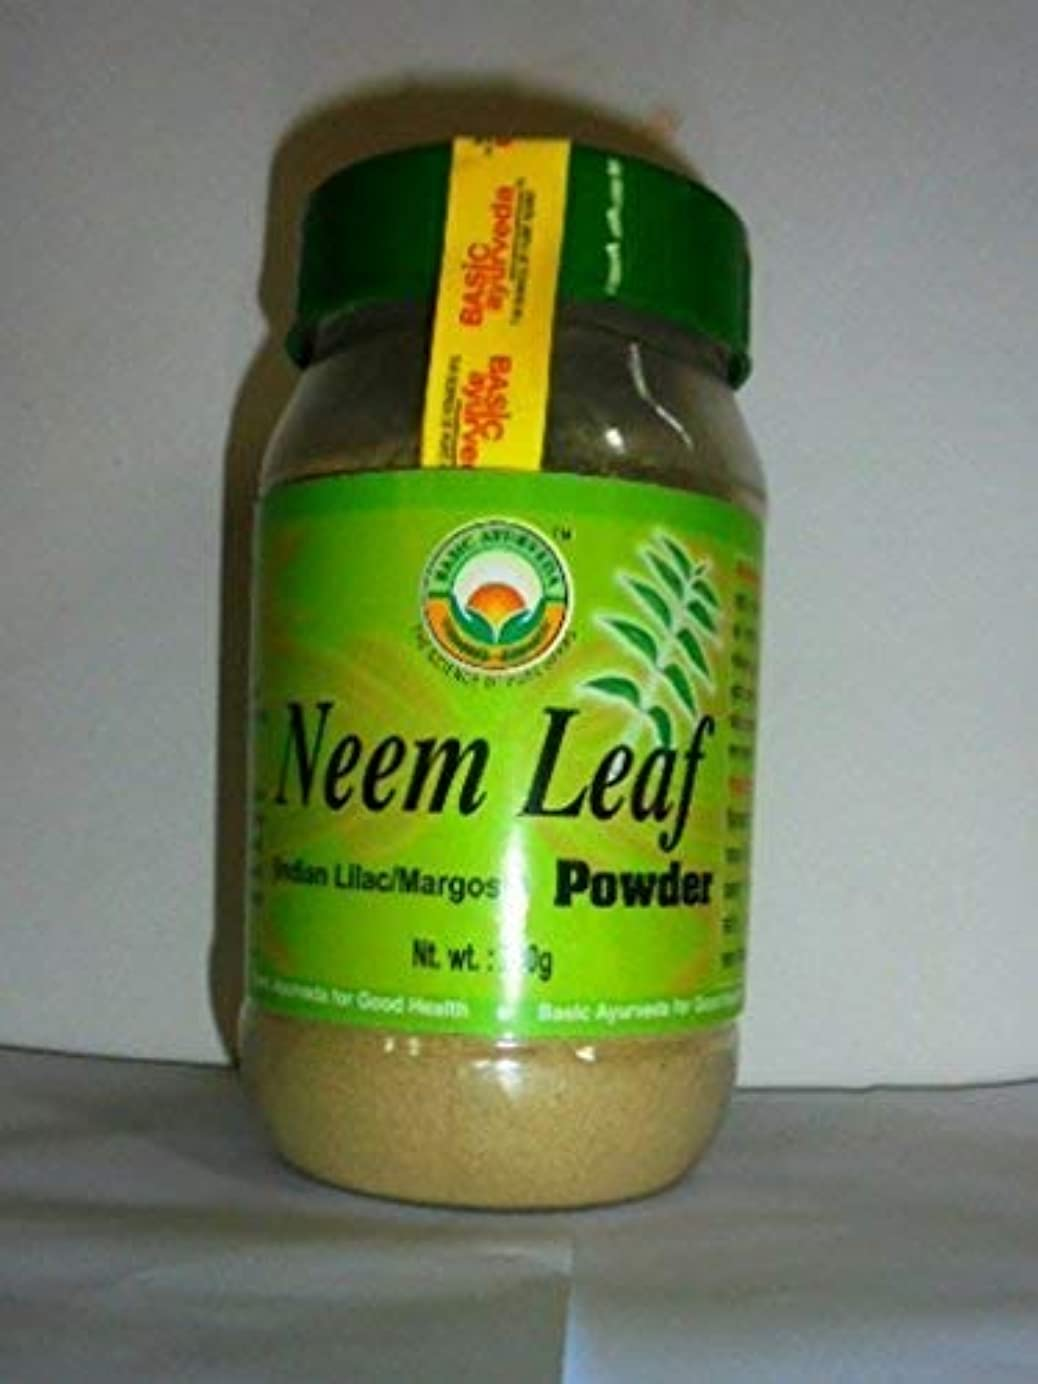 麻酔薬ルネッサンス暗記するNexxa 200g Pure Natural Basic Ayurveda Neem Leaf Powder Indian Lilac